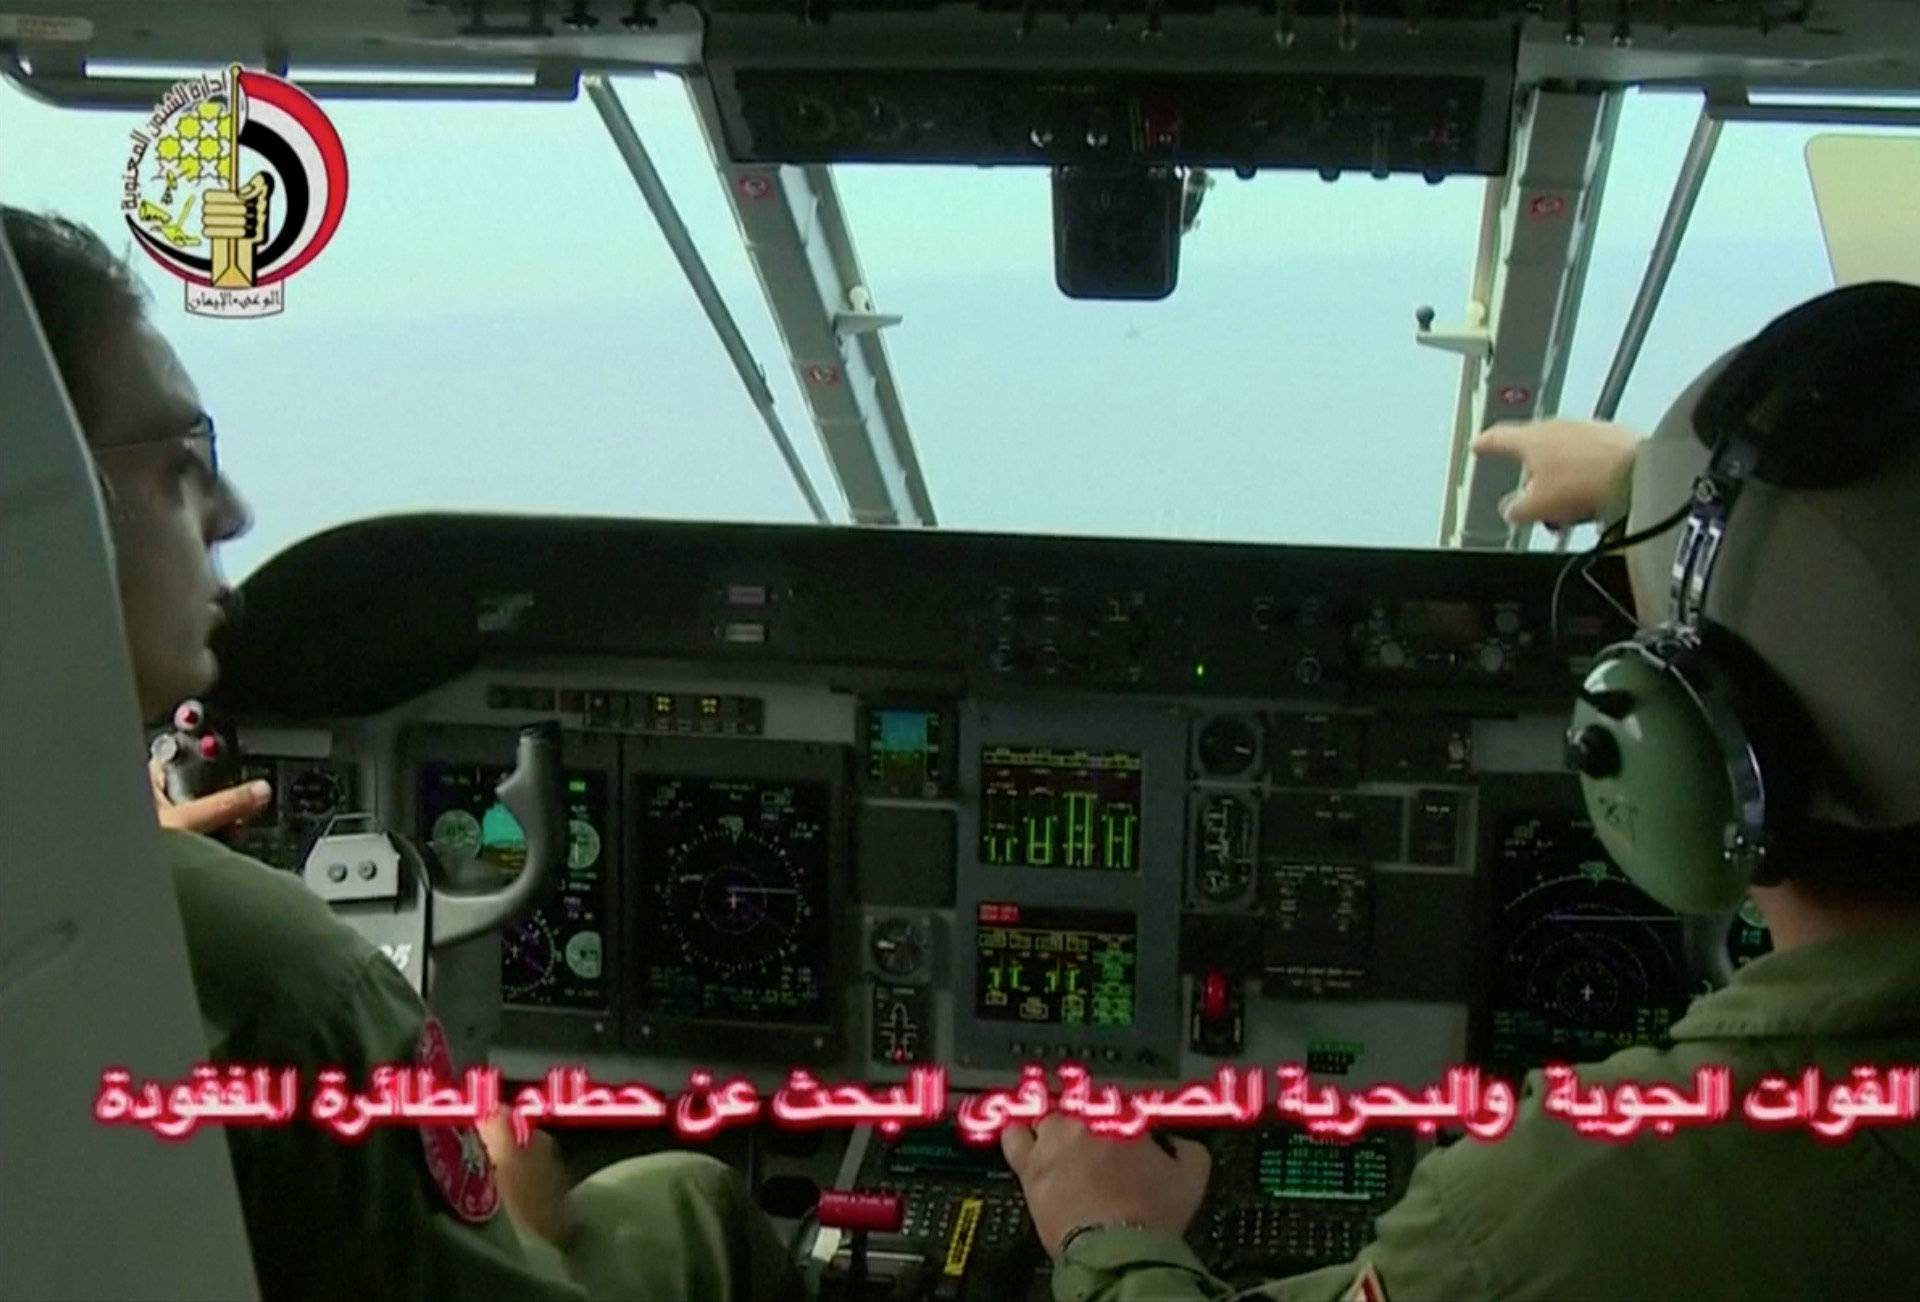 An Egyptian pilot points during a search operation by Egyptian air and navy forces for the EgyptAir plane that disappeared in the Mediterranean Sea, in this still image taken from video